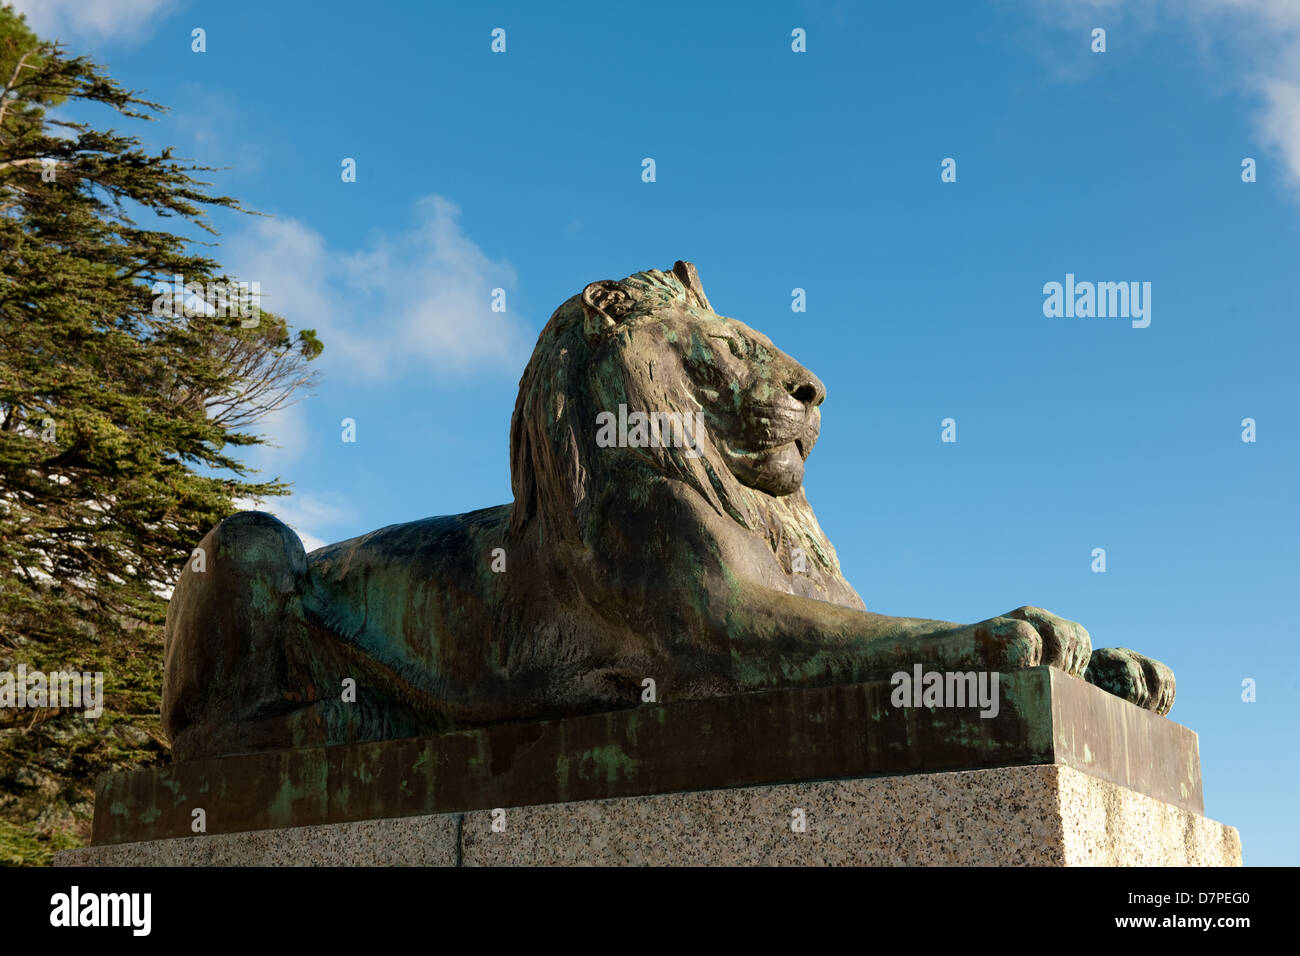 lion statue at Rhodes memorial, Cape Town, South Africa - Stock Image